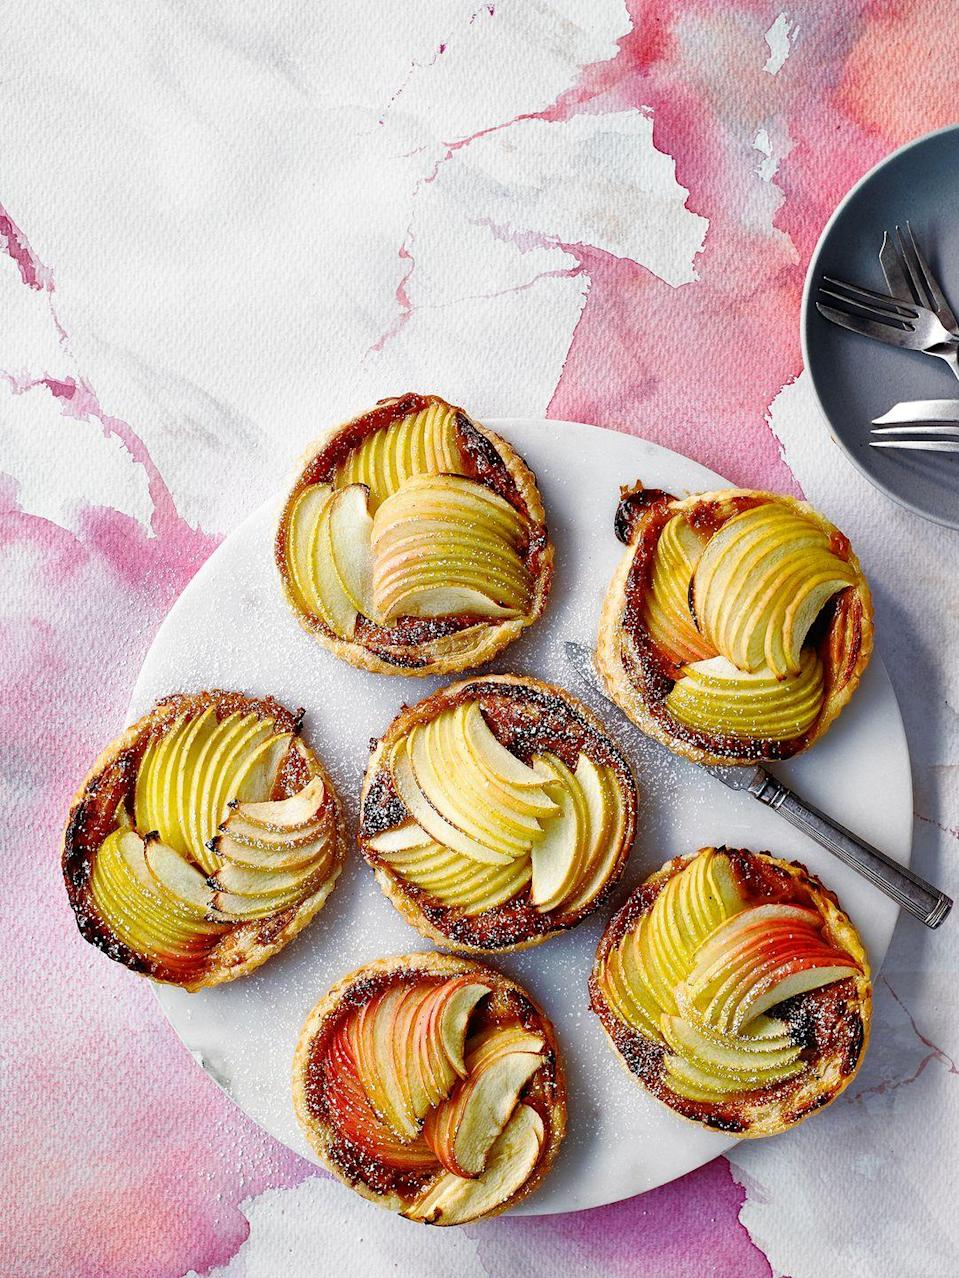 """<p>So delicious and impressive, your guests will never know you took shortcuts! These taste great with a ball of vanilla ice cream or some pouring cream.</p><p><strong>Recipe: <a href=""""https://www.goodhousekeeping.com/uk/food/recipes/a26943008/easy-apple-tart/"""" rel=""""nofollow noopener"""" target=""""_blank"""" data-ylk=""""slk:Three-ingredient Apple Tarts"""" class=""""link rapid-noclick-resp"""">Three-ingredient Apple Tarts</a></strong></p>"""